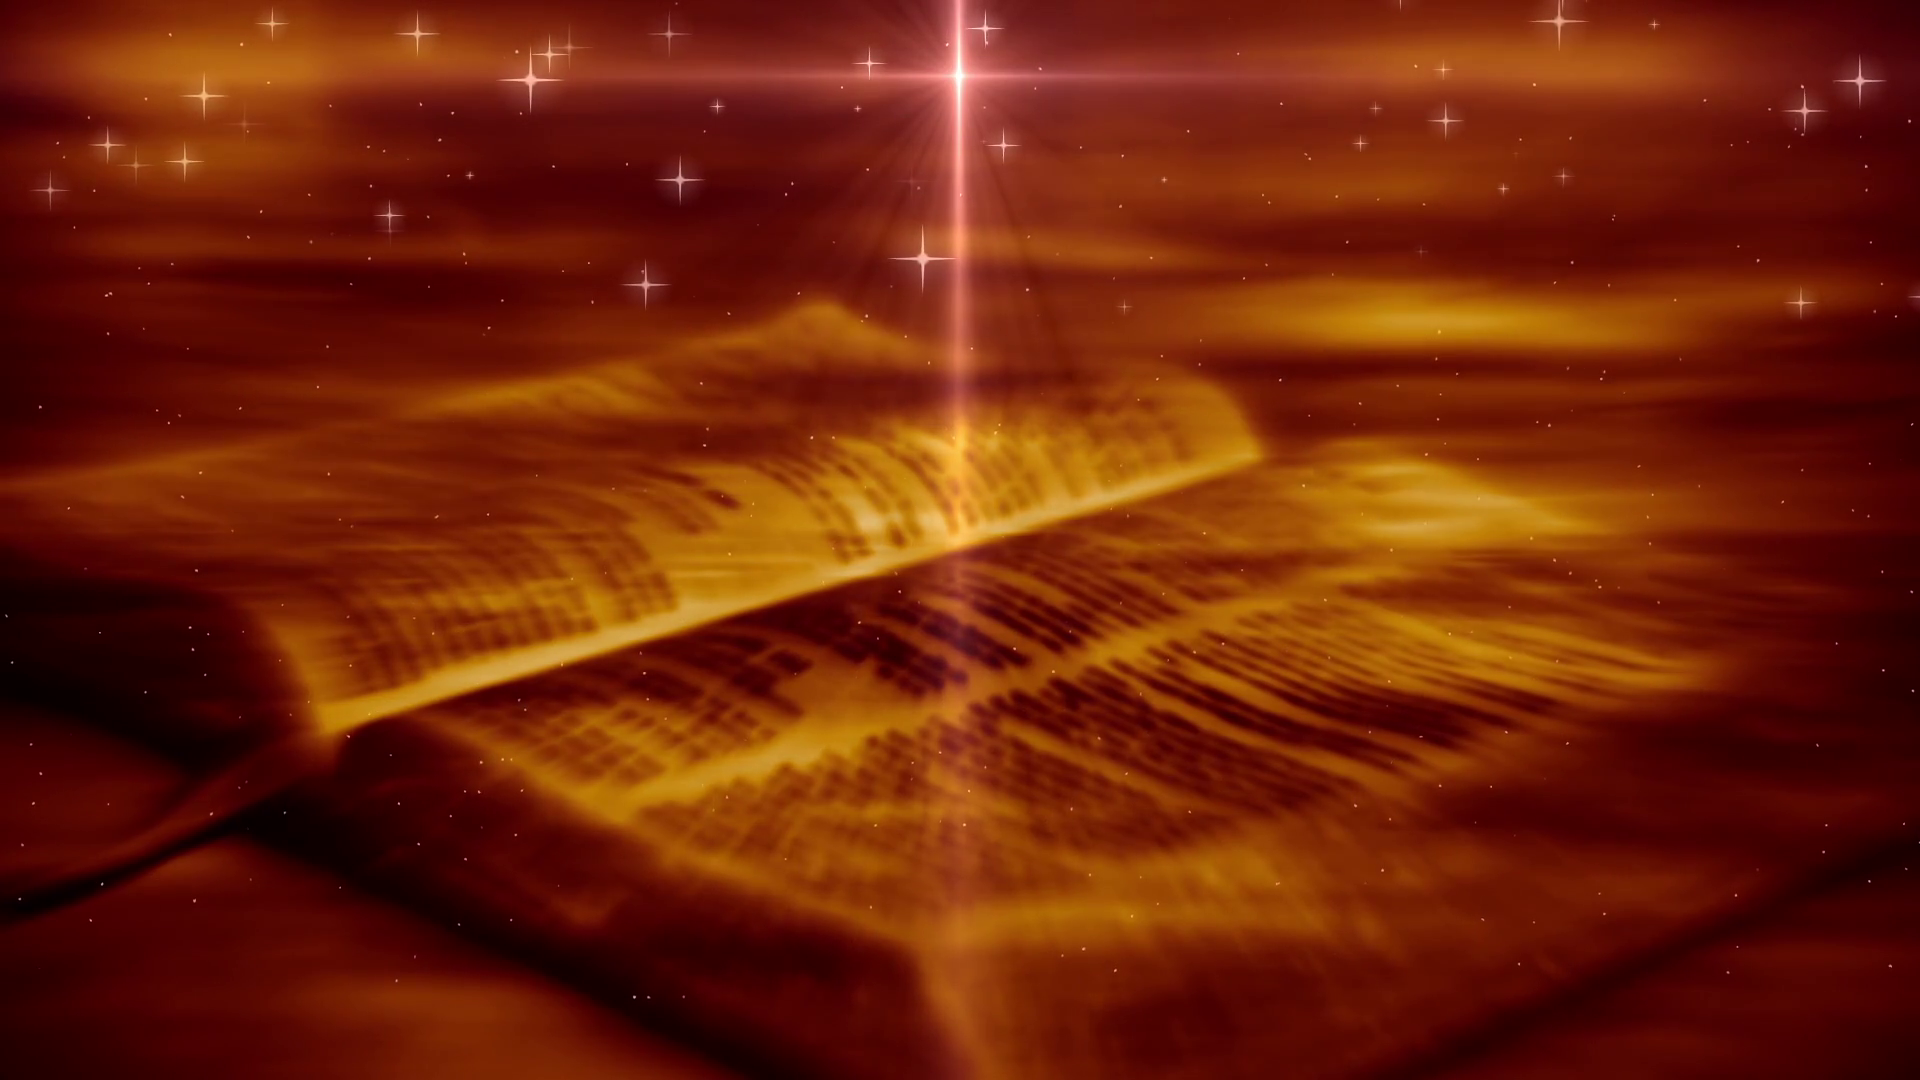 The Holy Bible Open Religious Scriptures Background Motion 1920x1080